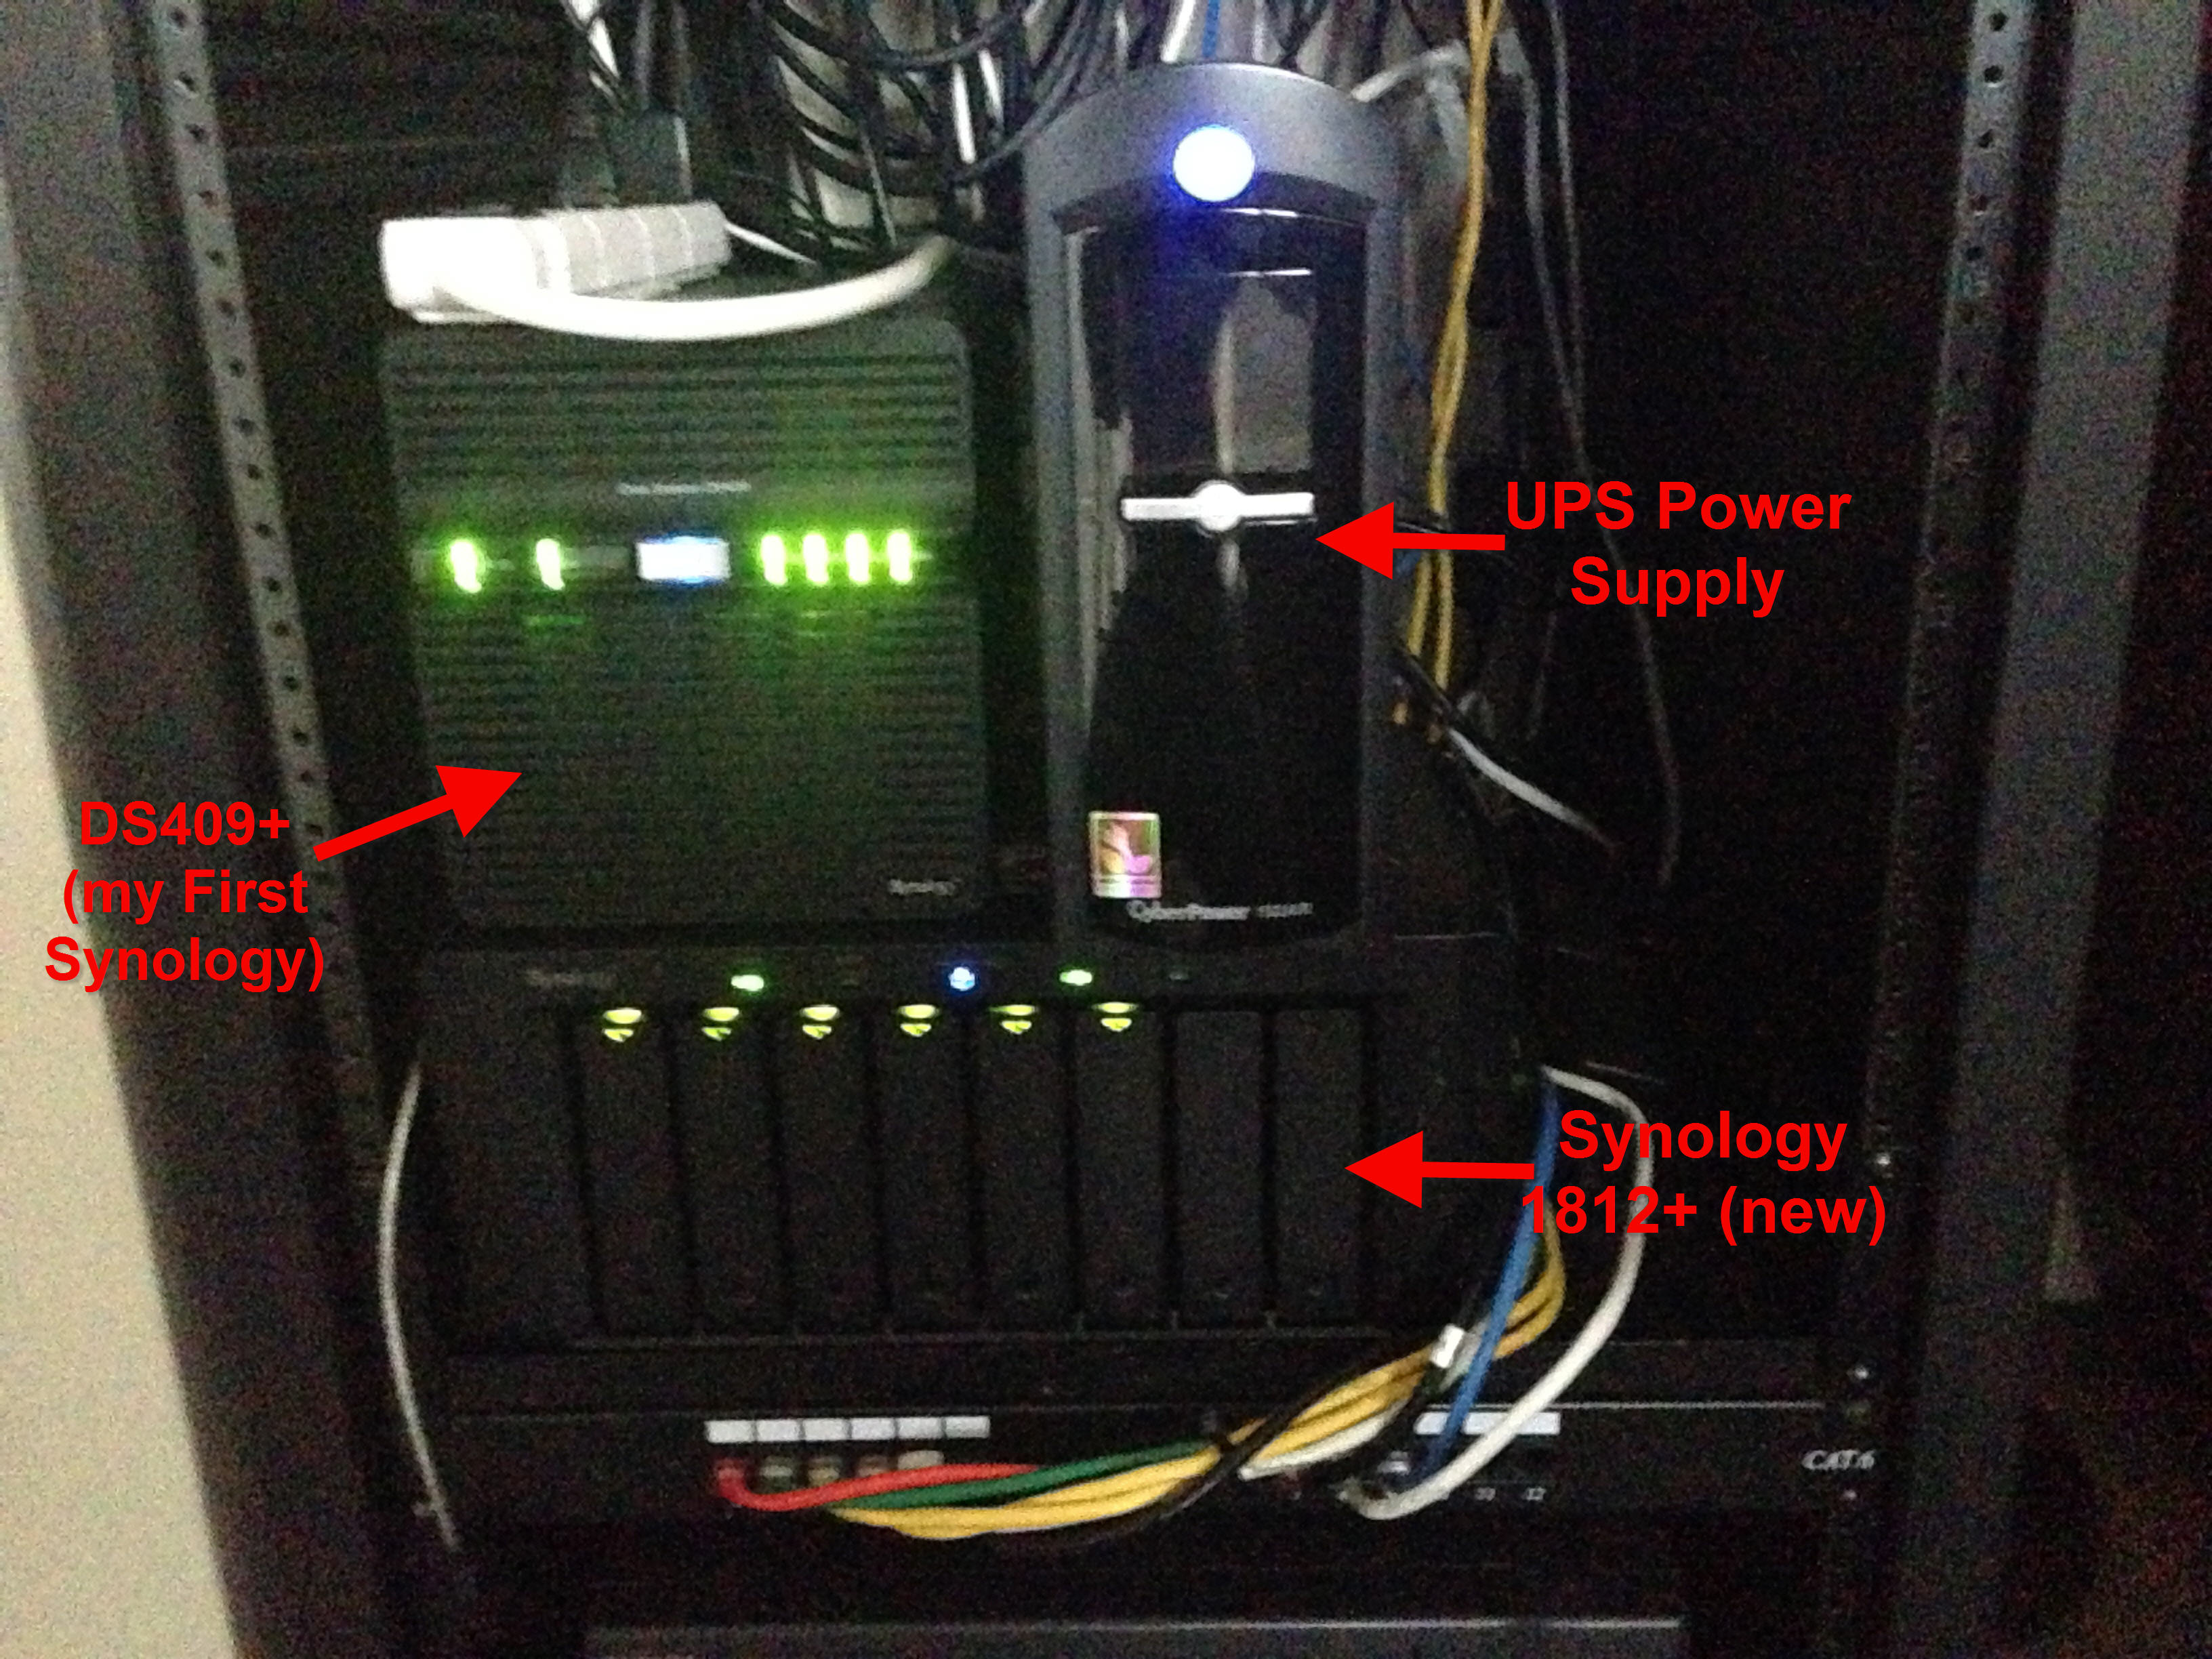 Reeds Home Theater Automation Write Up Structured Wiring Ups Synology Devices And My